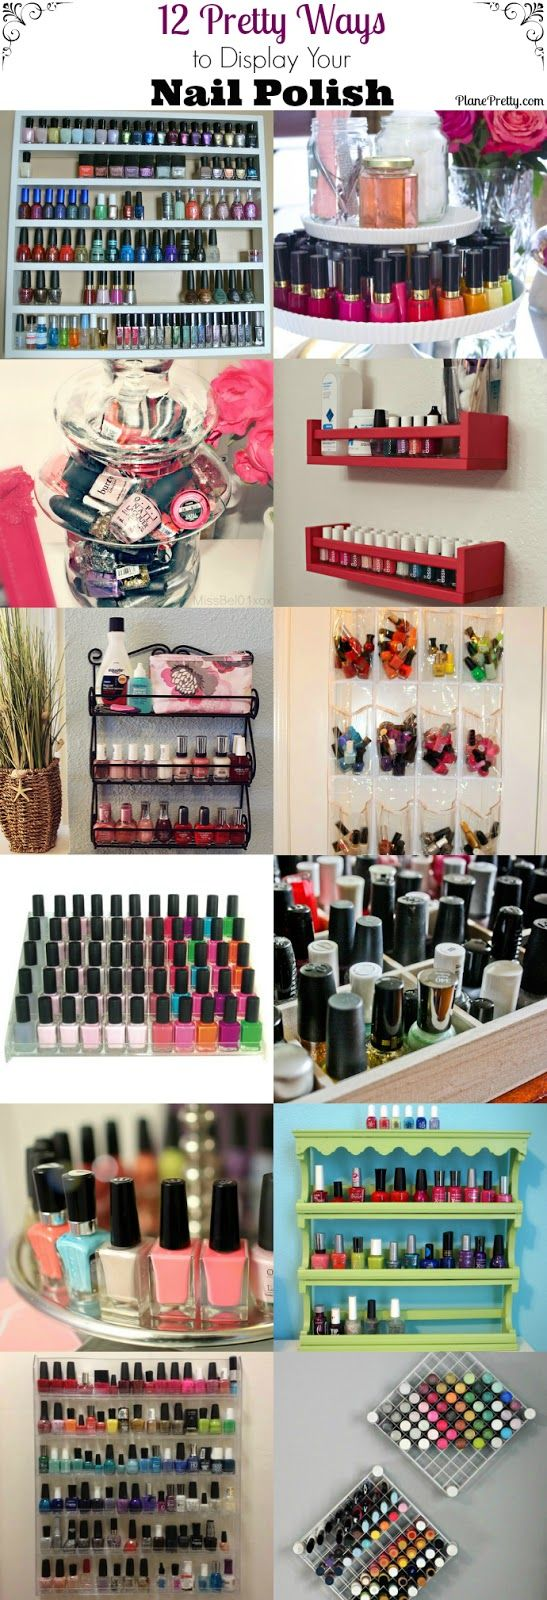 nail polish organization, nail polish display... If I could only pick one...